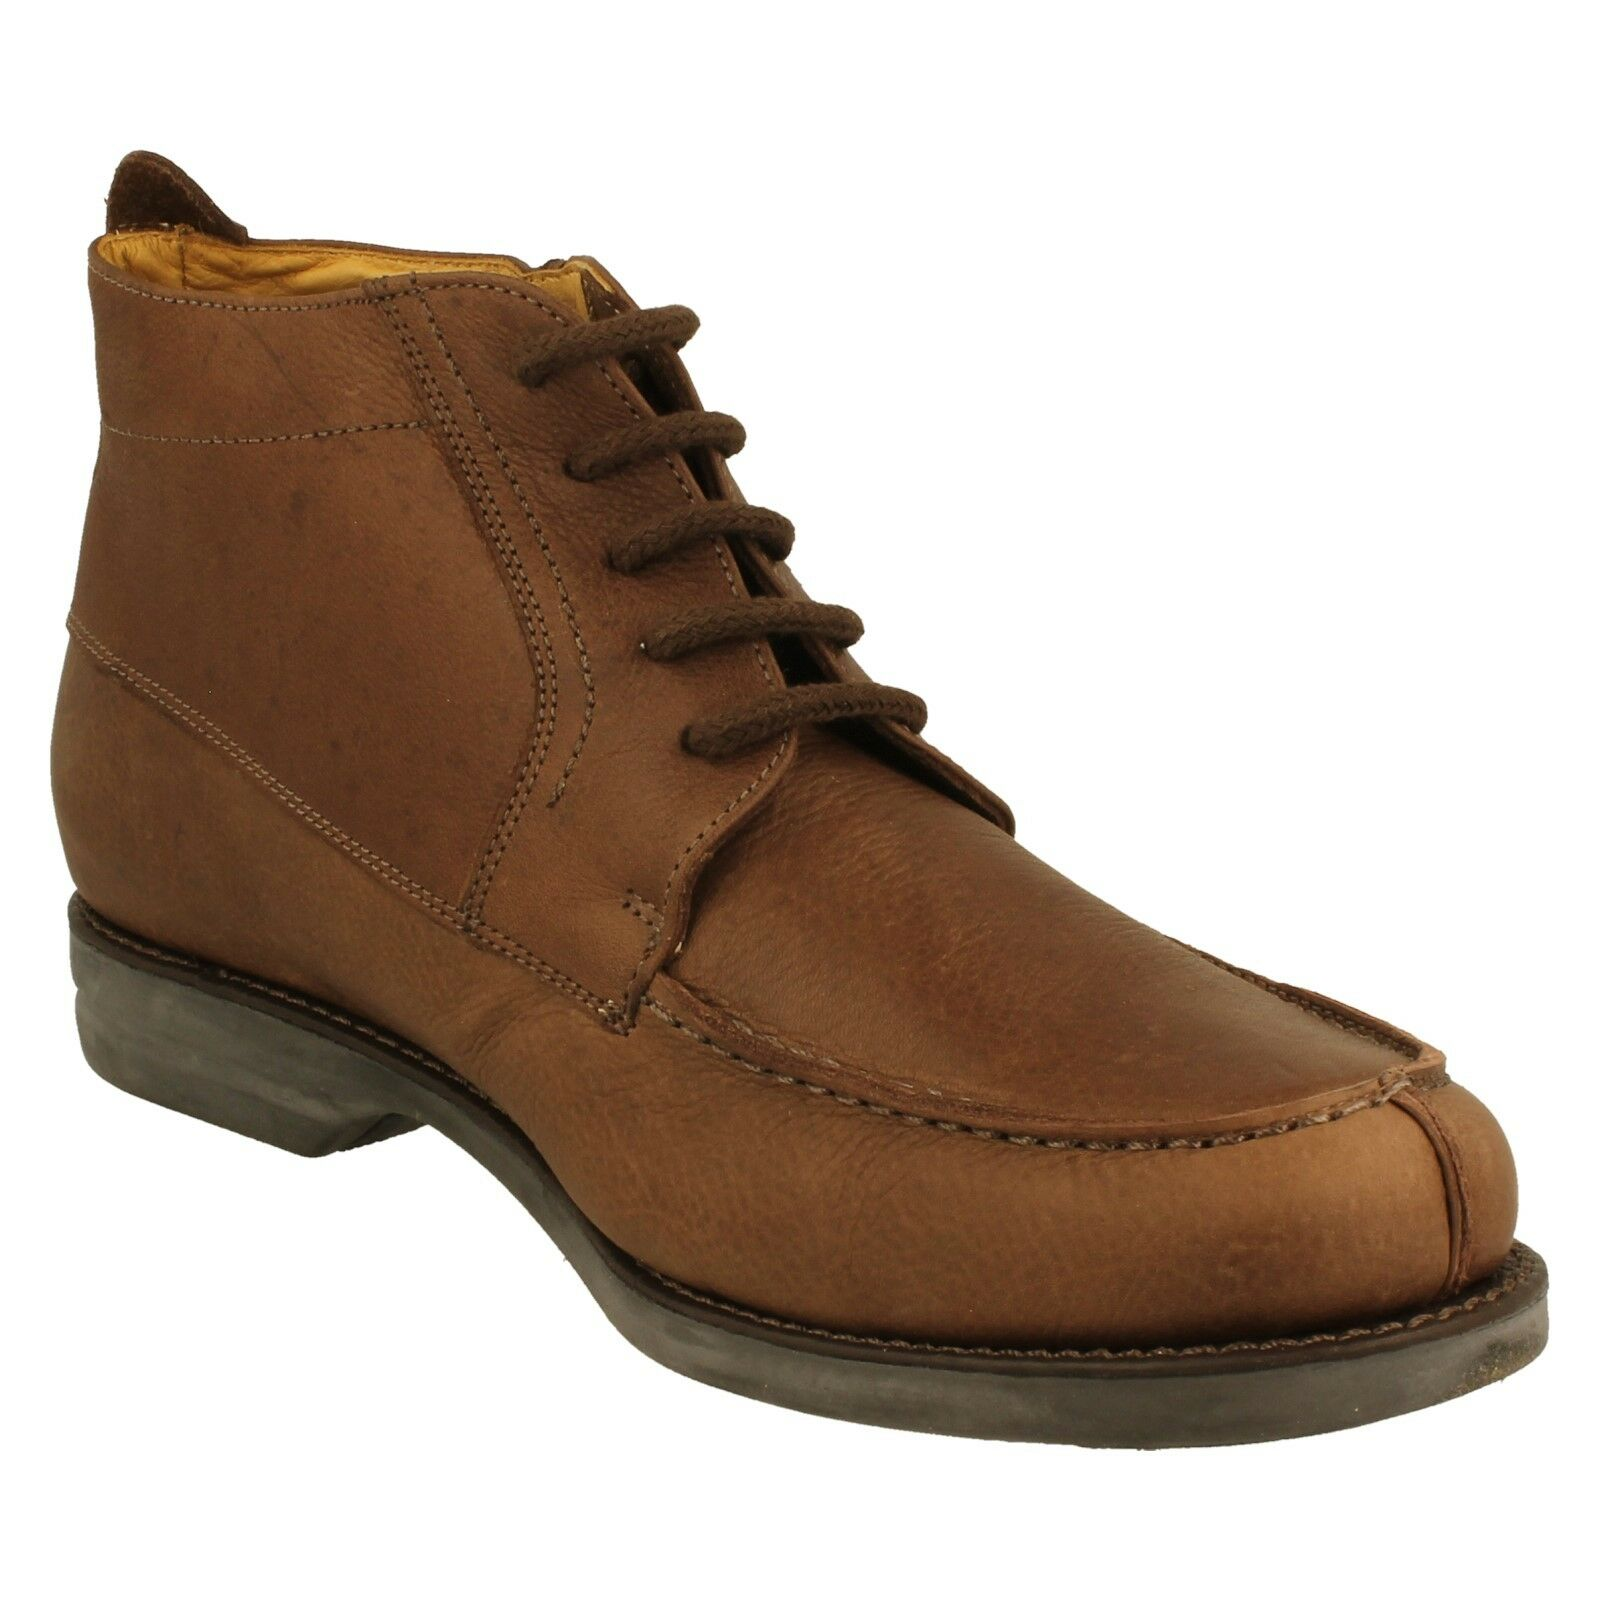 Men's Anatomic & Co Ankle Stiefel - Regalo